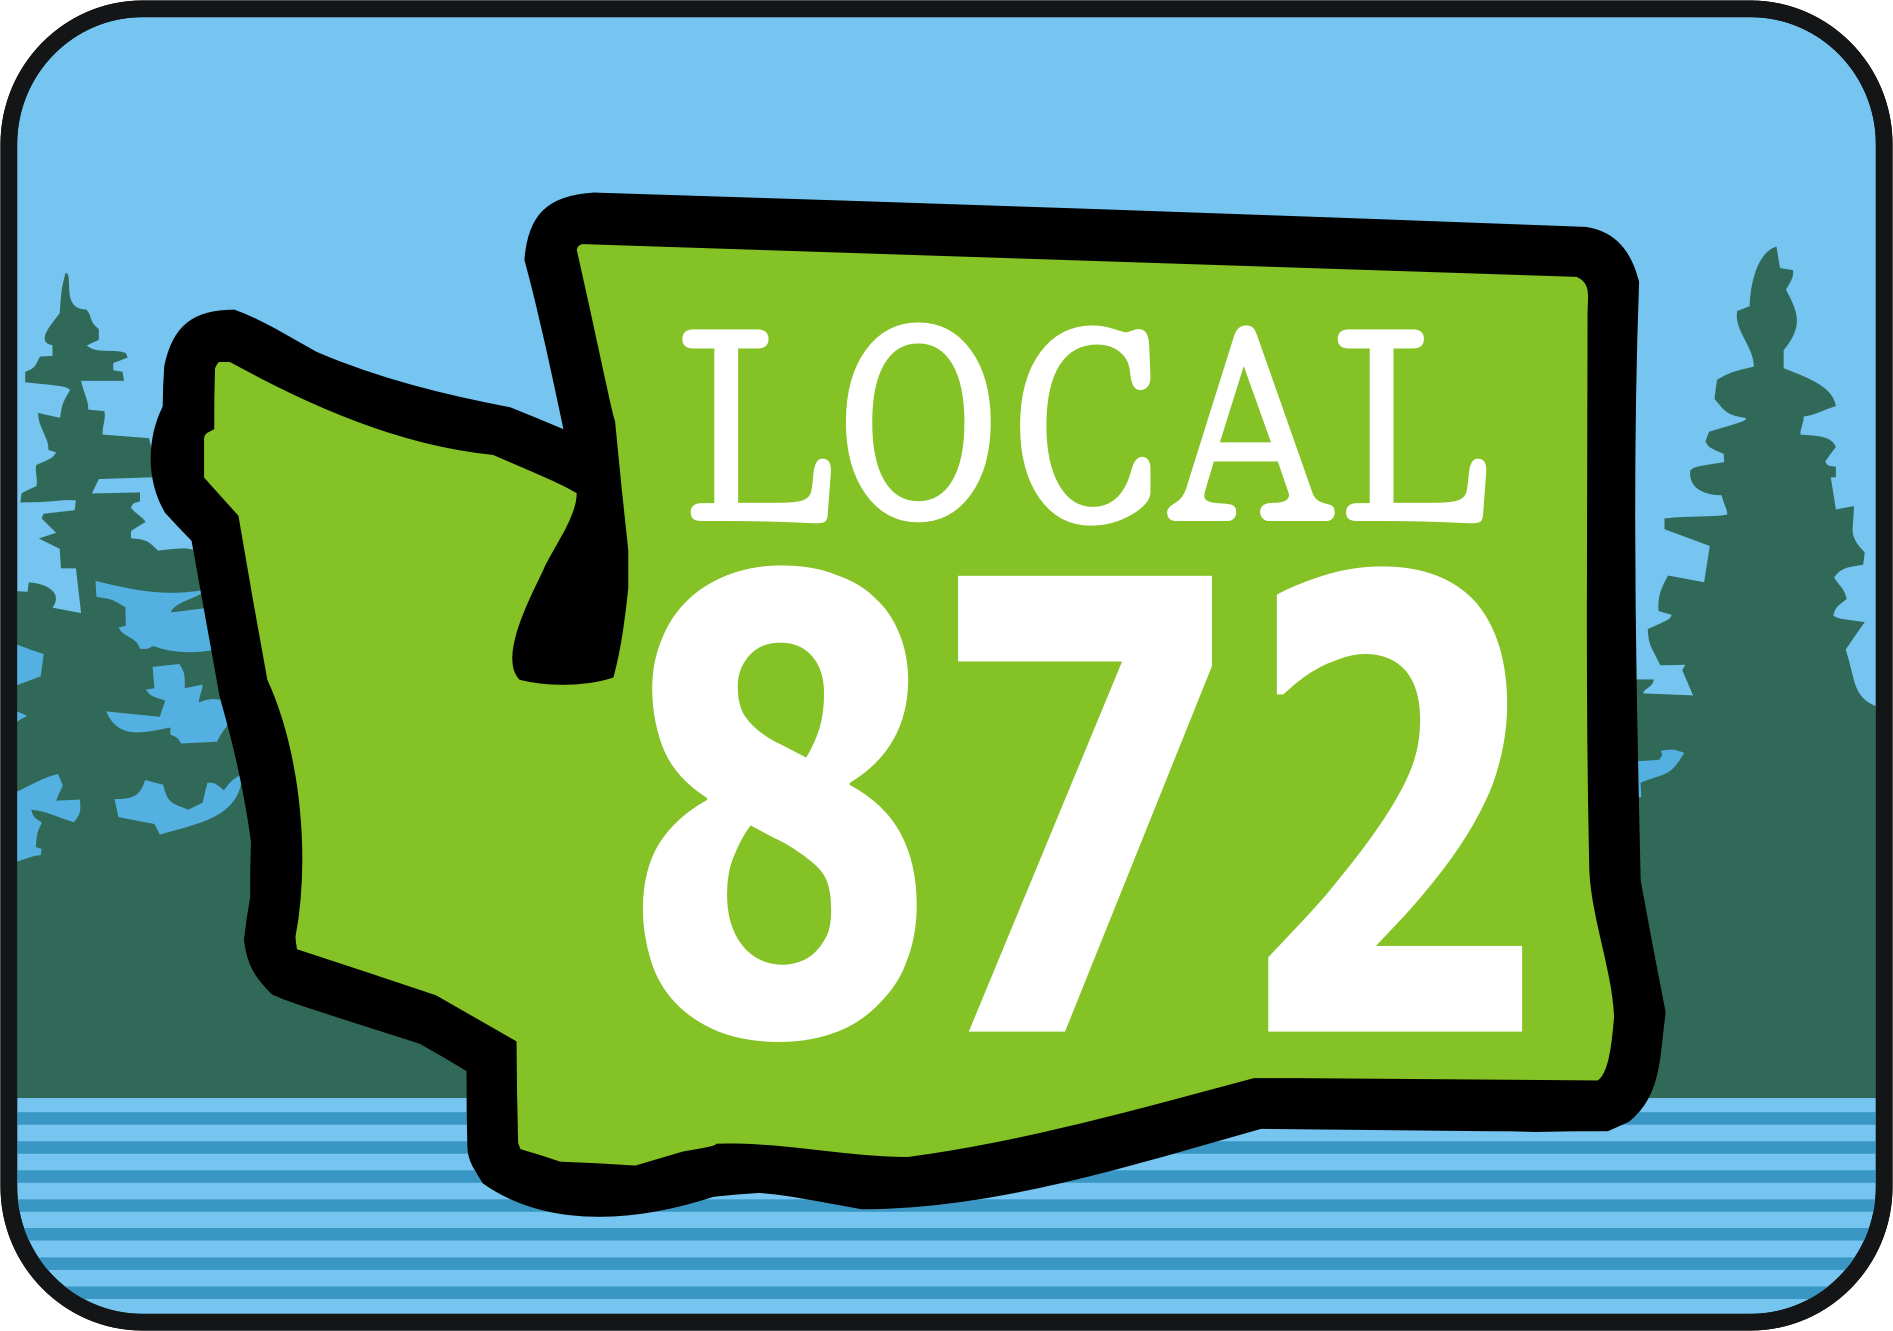 logo_color_-_local_872.png